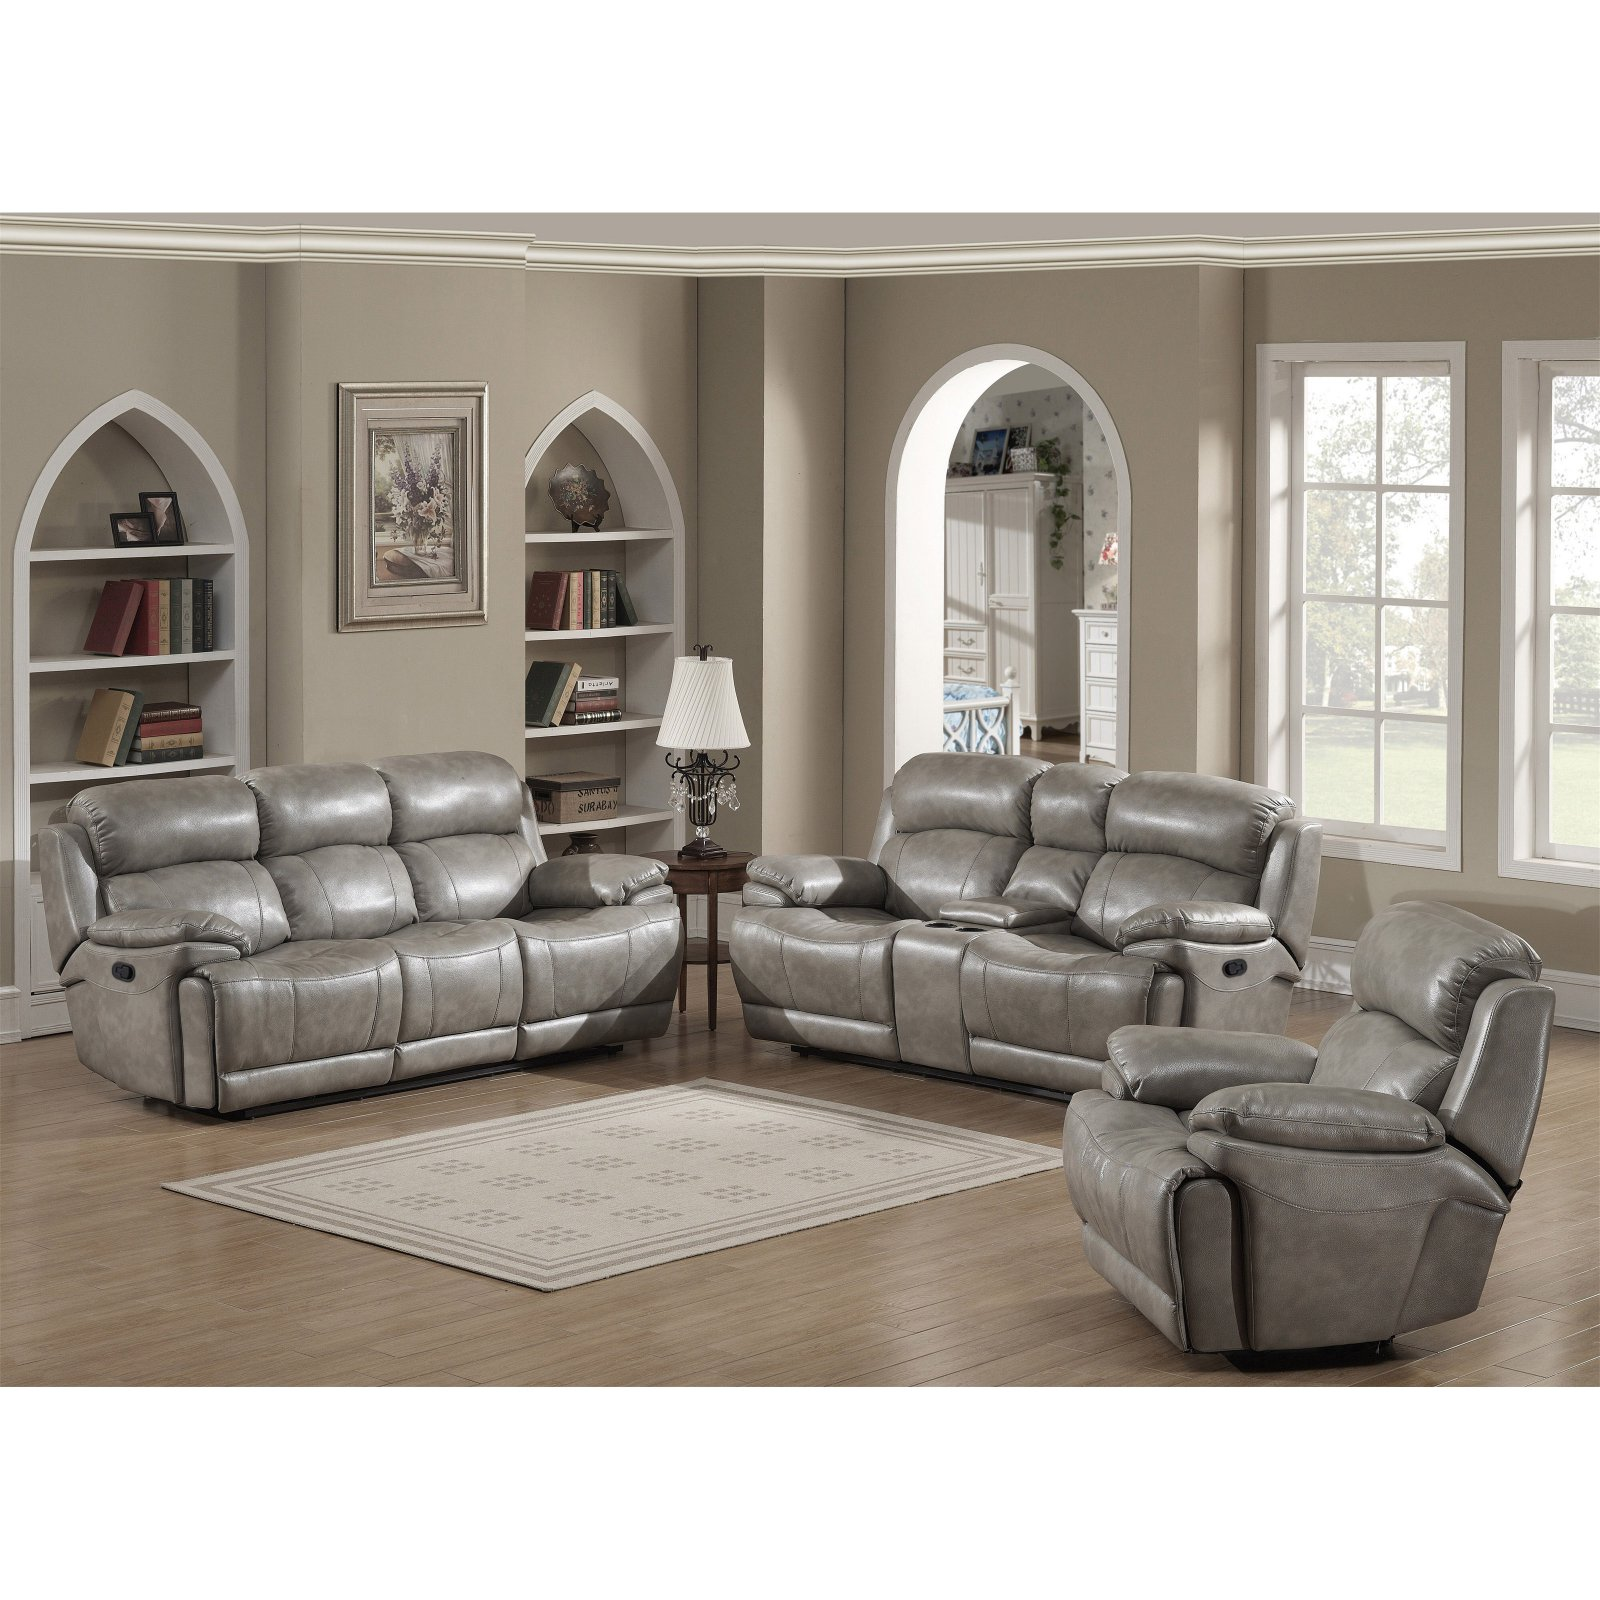 AC Pacific Estella Sofa Set